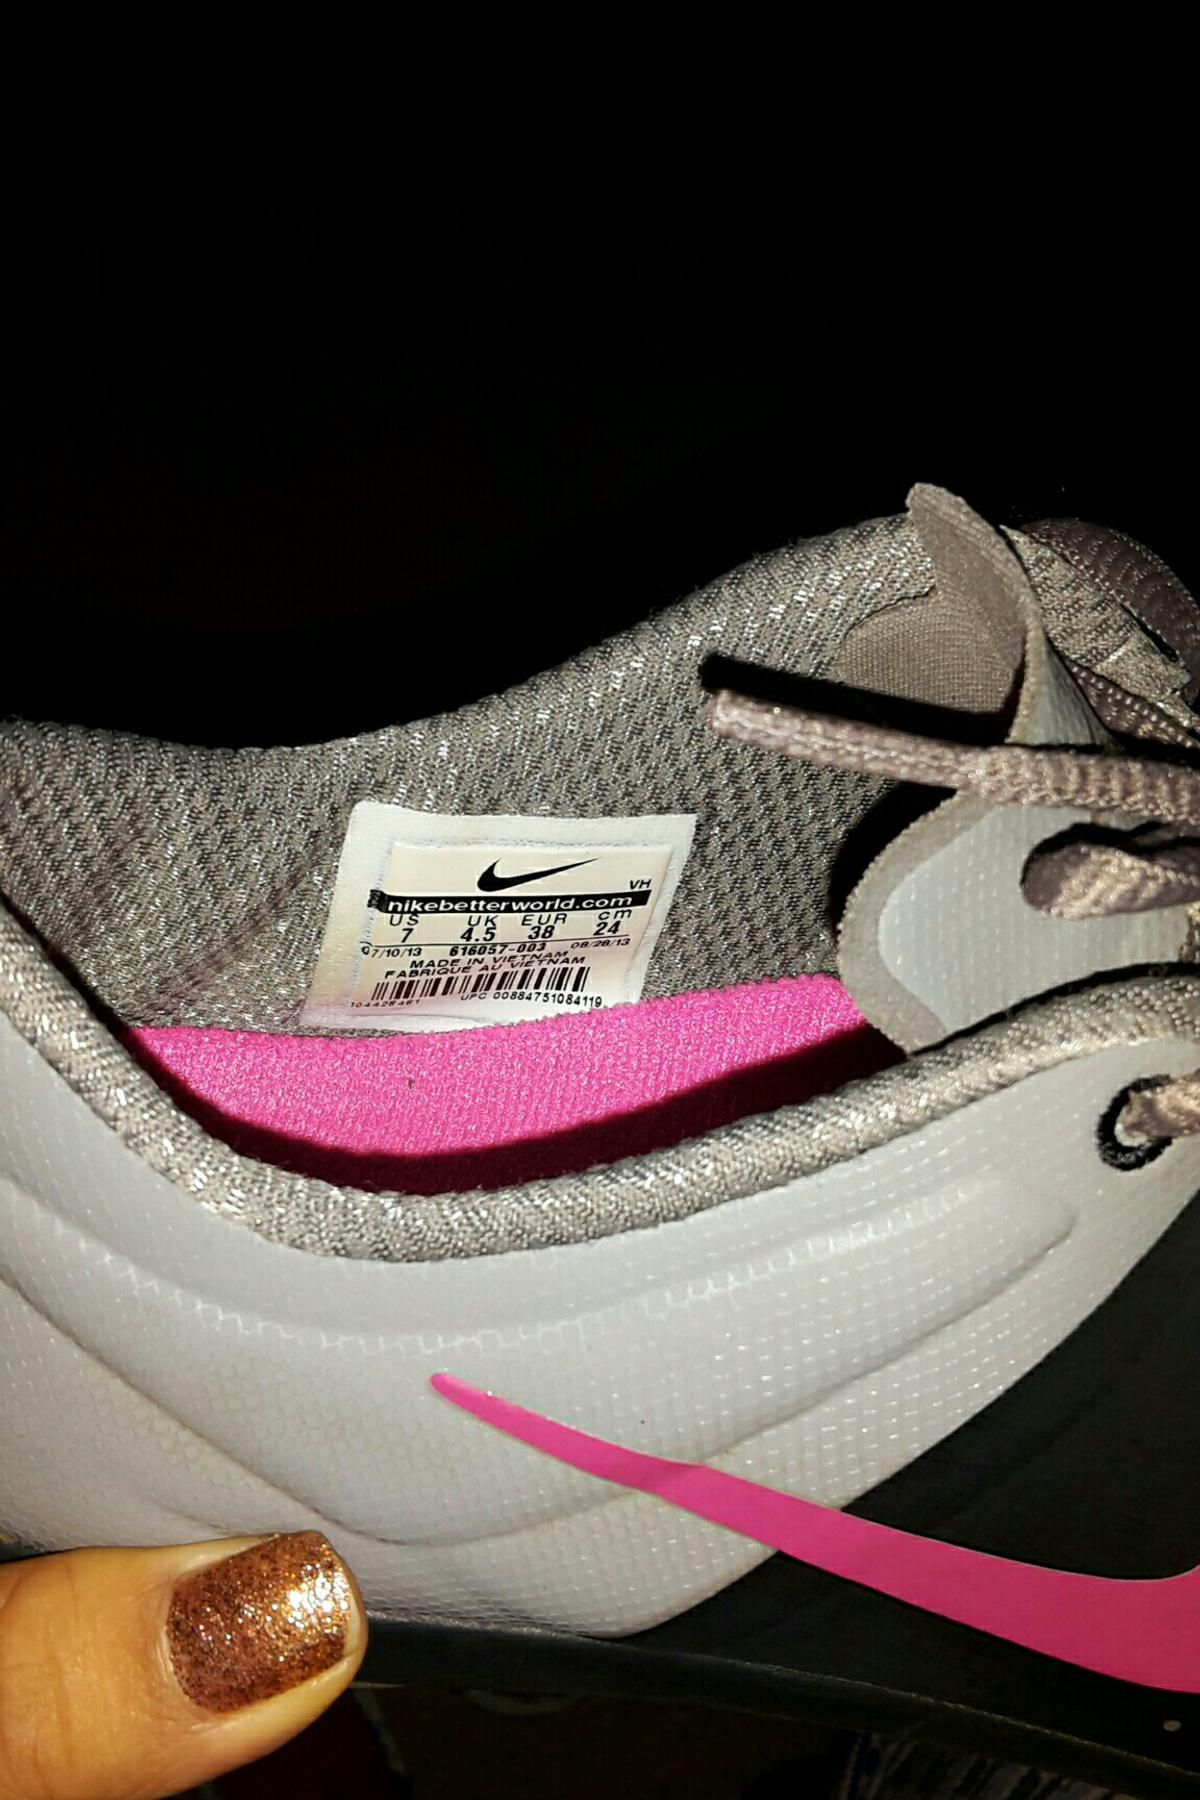 Schuhe in €12 Schotten for for Nike 00 sale 38 lauf 63679 oCxBrde